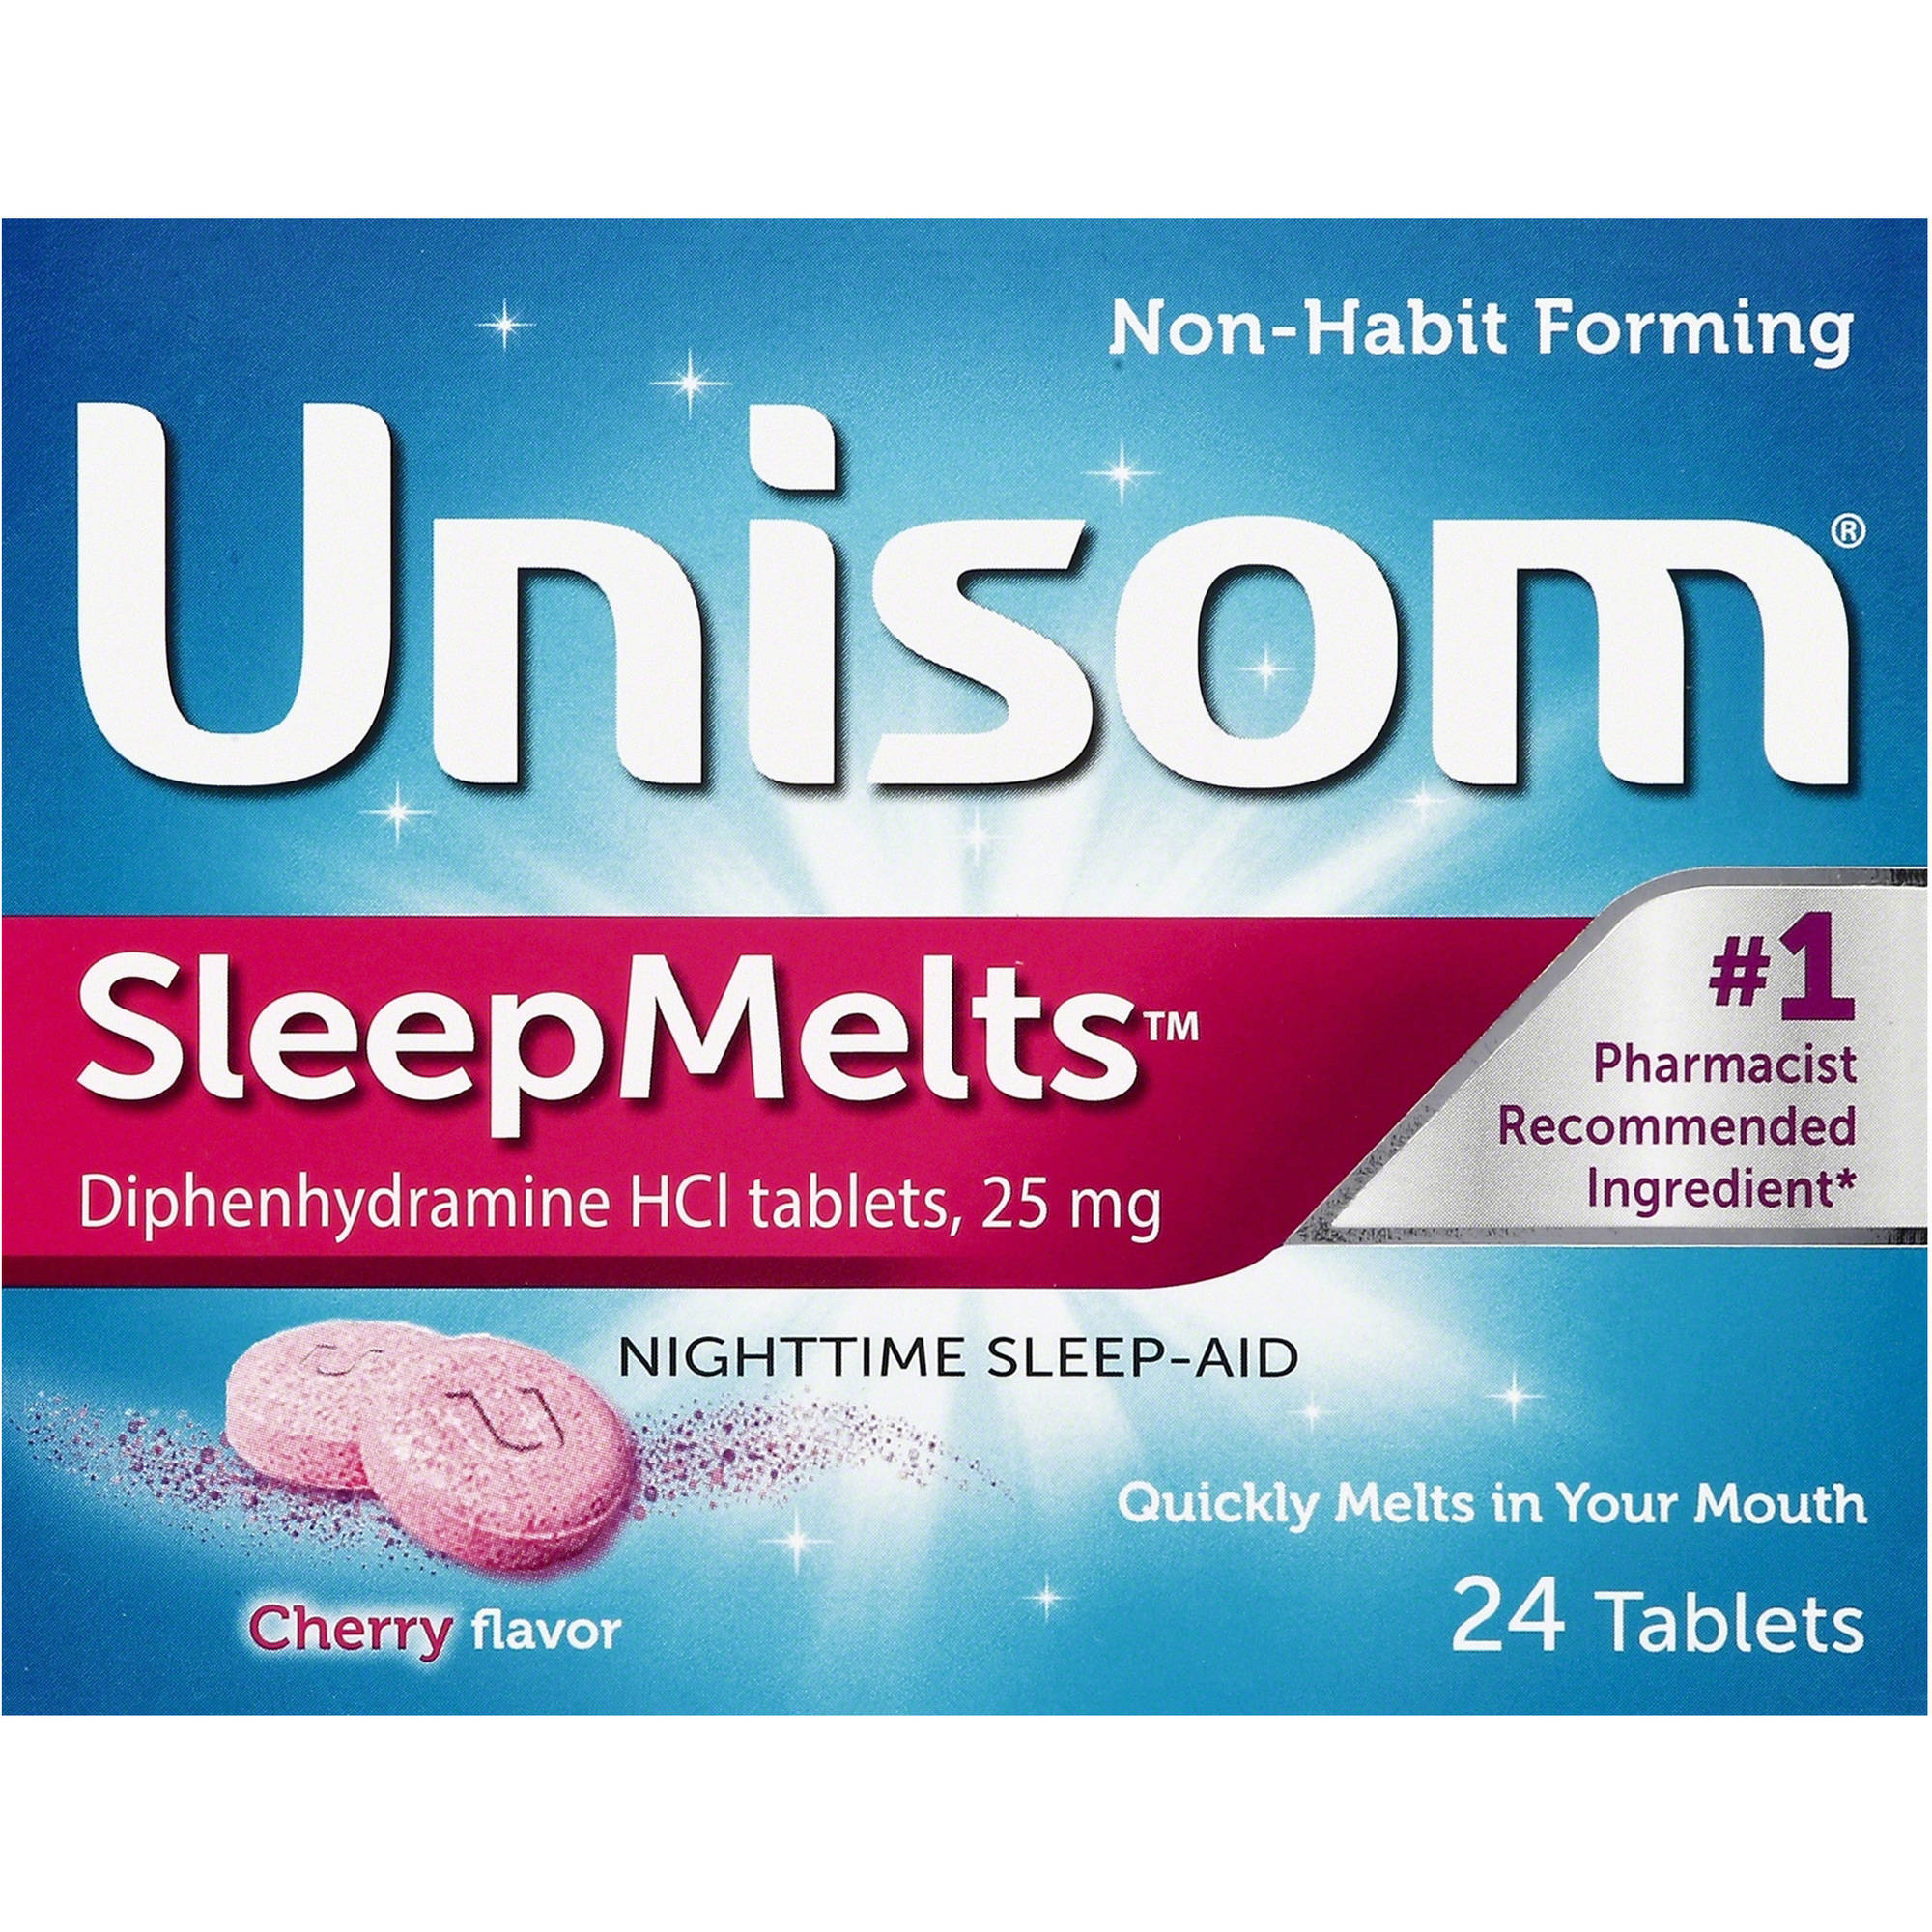 Unisom Sleepmelts, 24 count